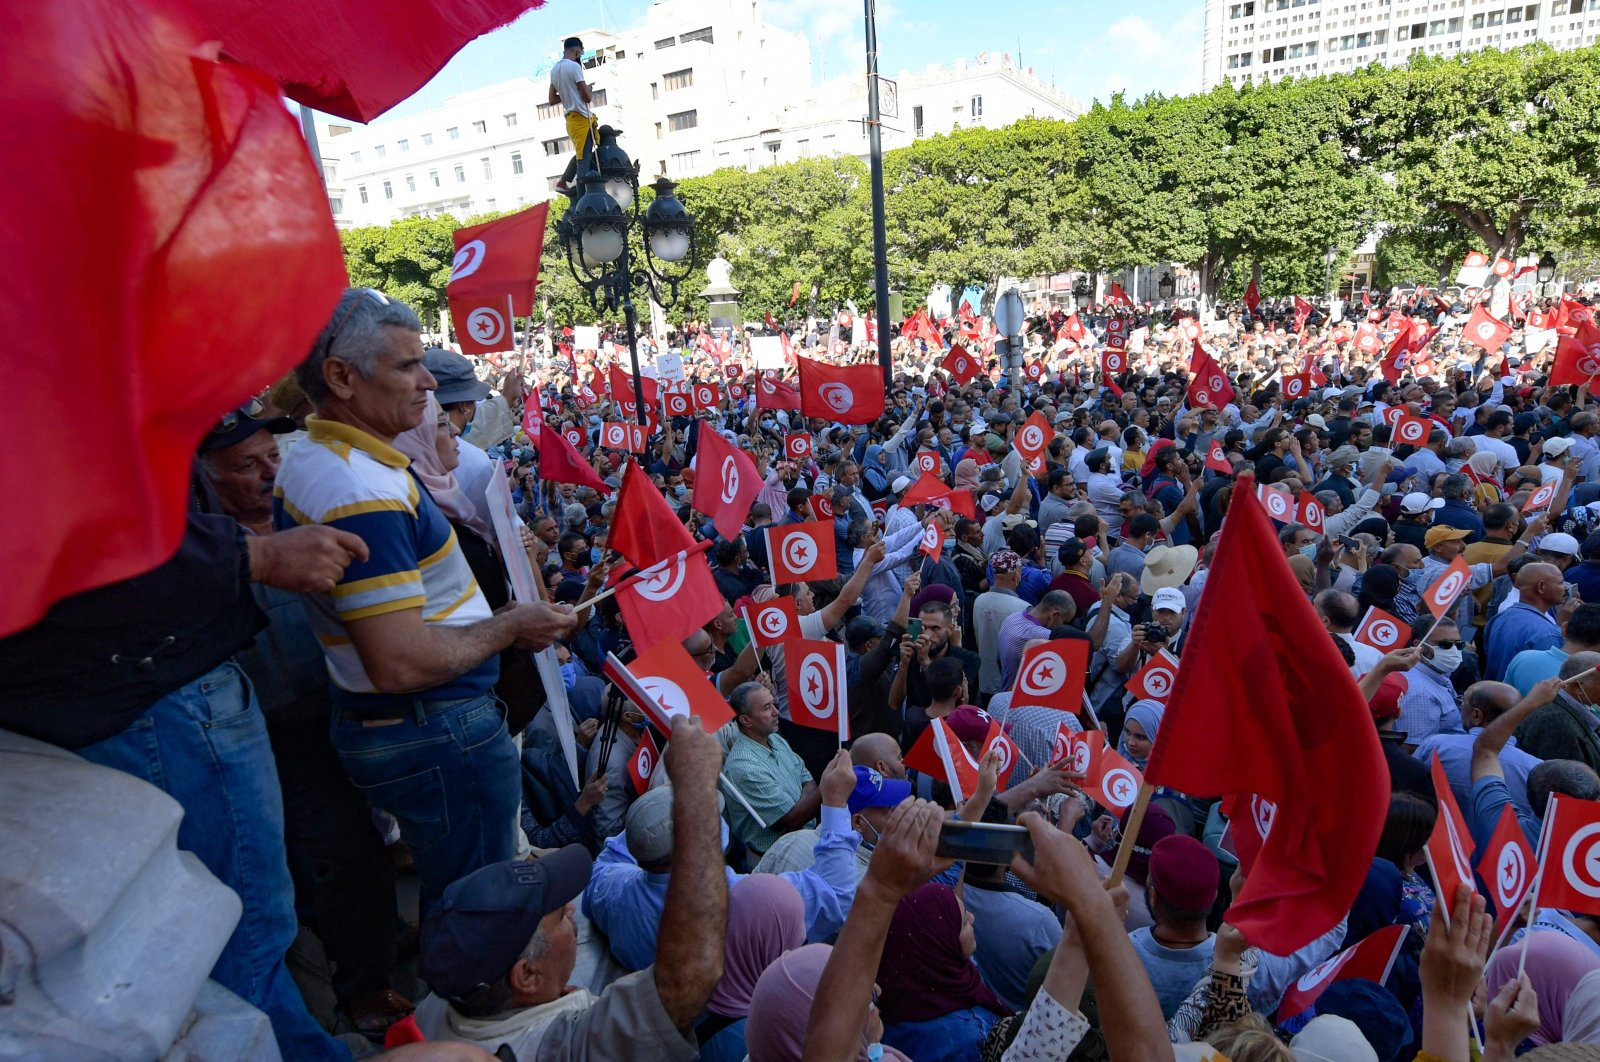 Tunisians raise national flags during a rally against their president along the Habib Bourguiba avenue in the capital Tunis, Oct. 10, 2021. (AFP Photo)